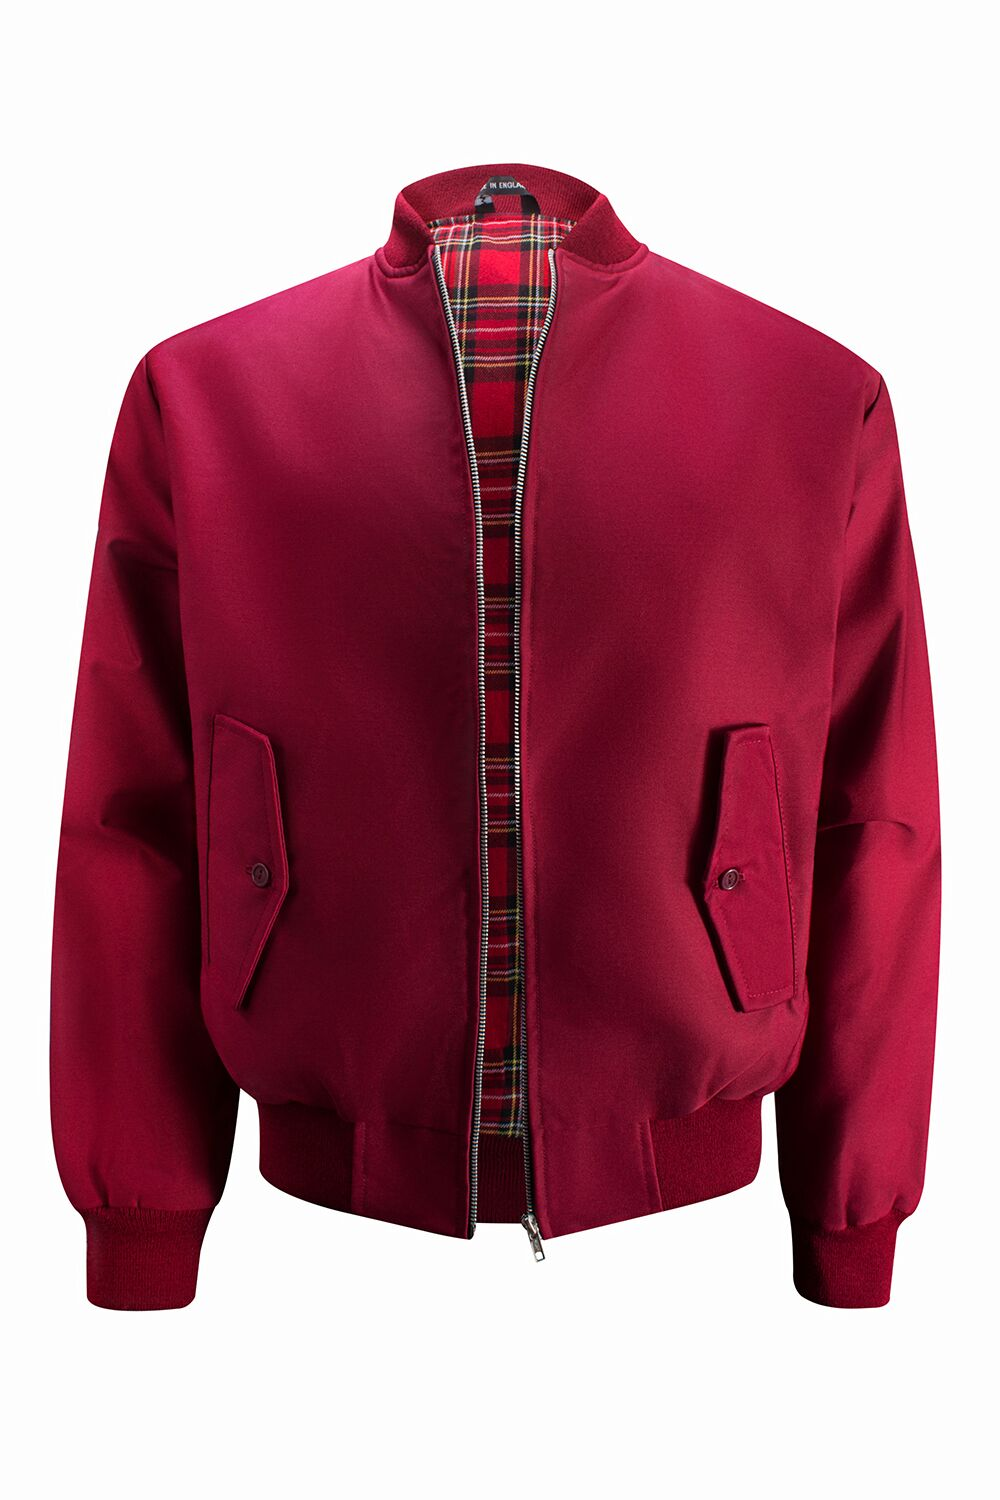 Mens Harrington Jacket with Ribbed Collar - Burgundy